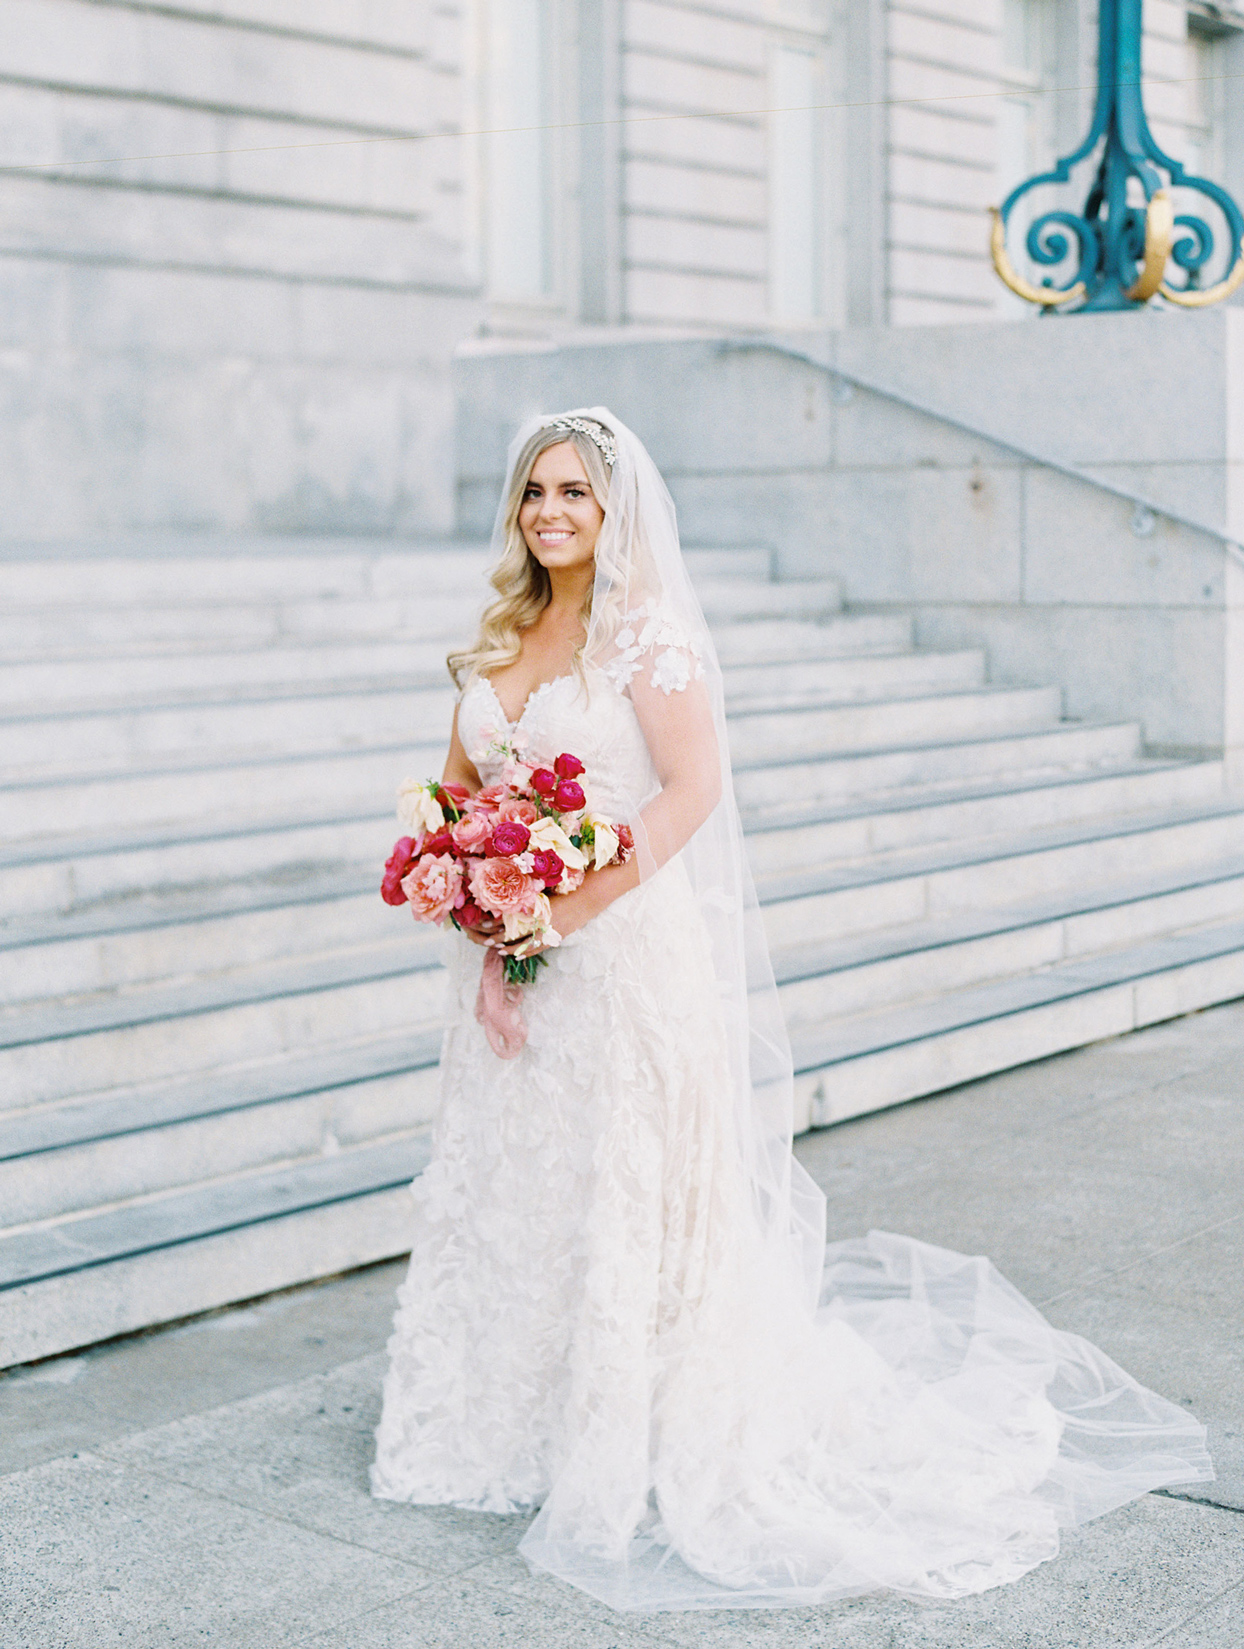 bride smiling outside venue holding red and pink floral bouquet